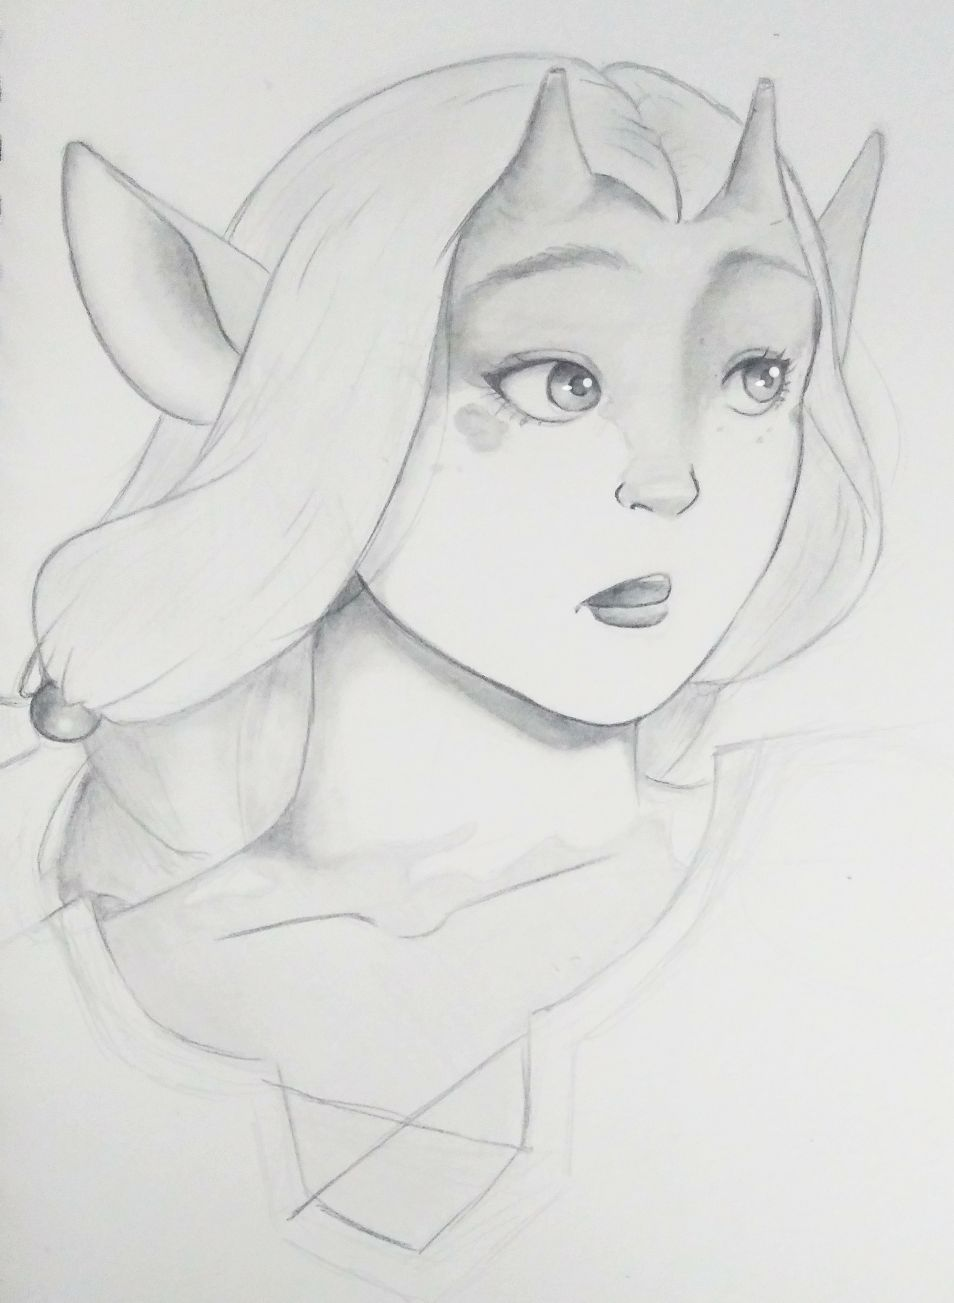 Character Ilustration - image 1 - student project